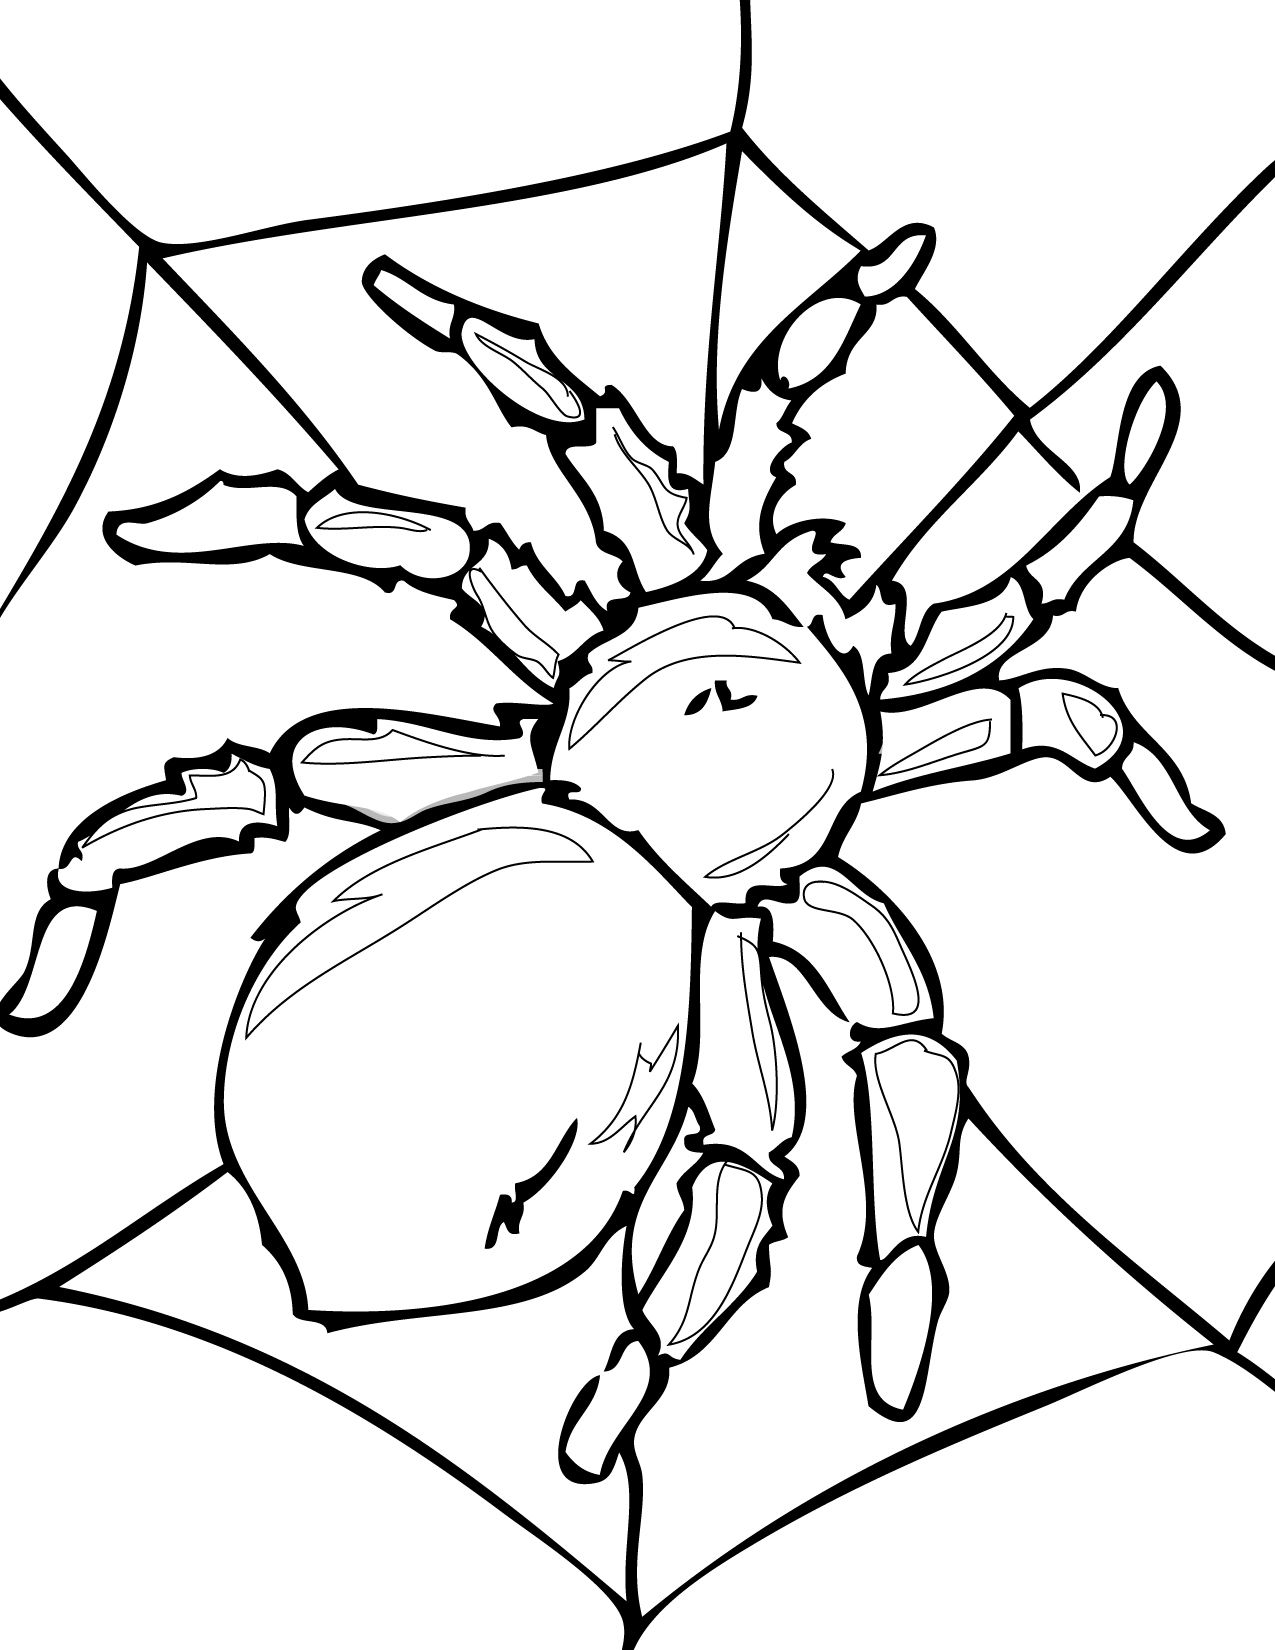 Handheld coloring games for toddlers - Awesome Bugs To Color Coloring Pages For Kidskids